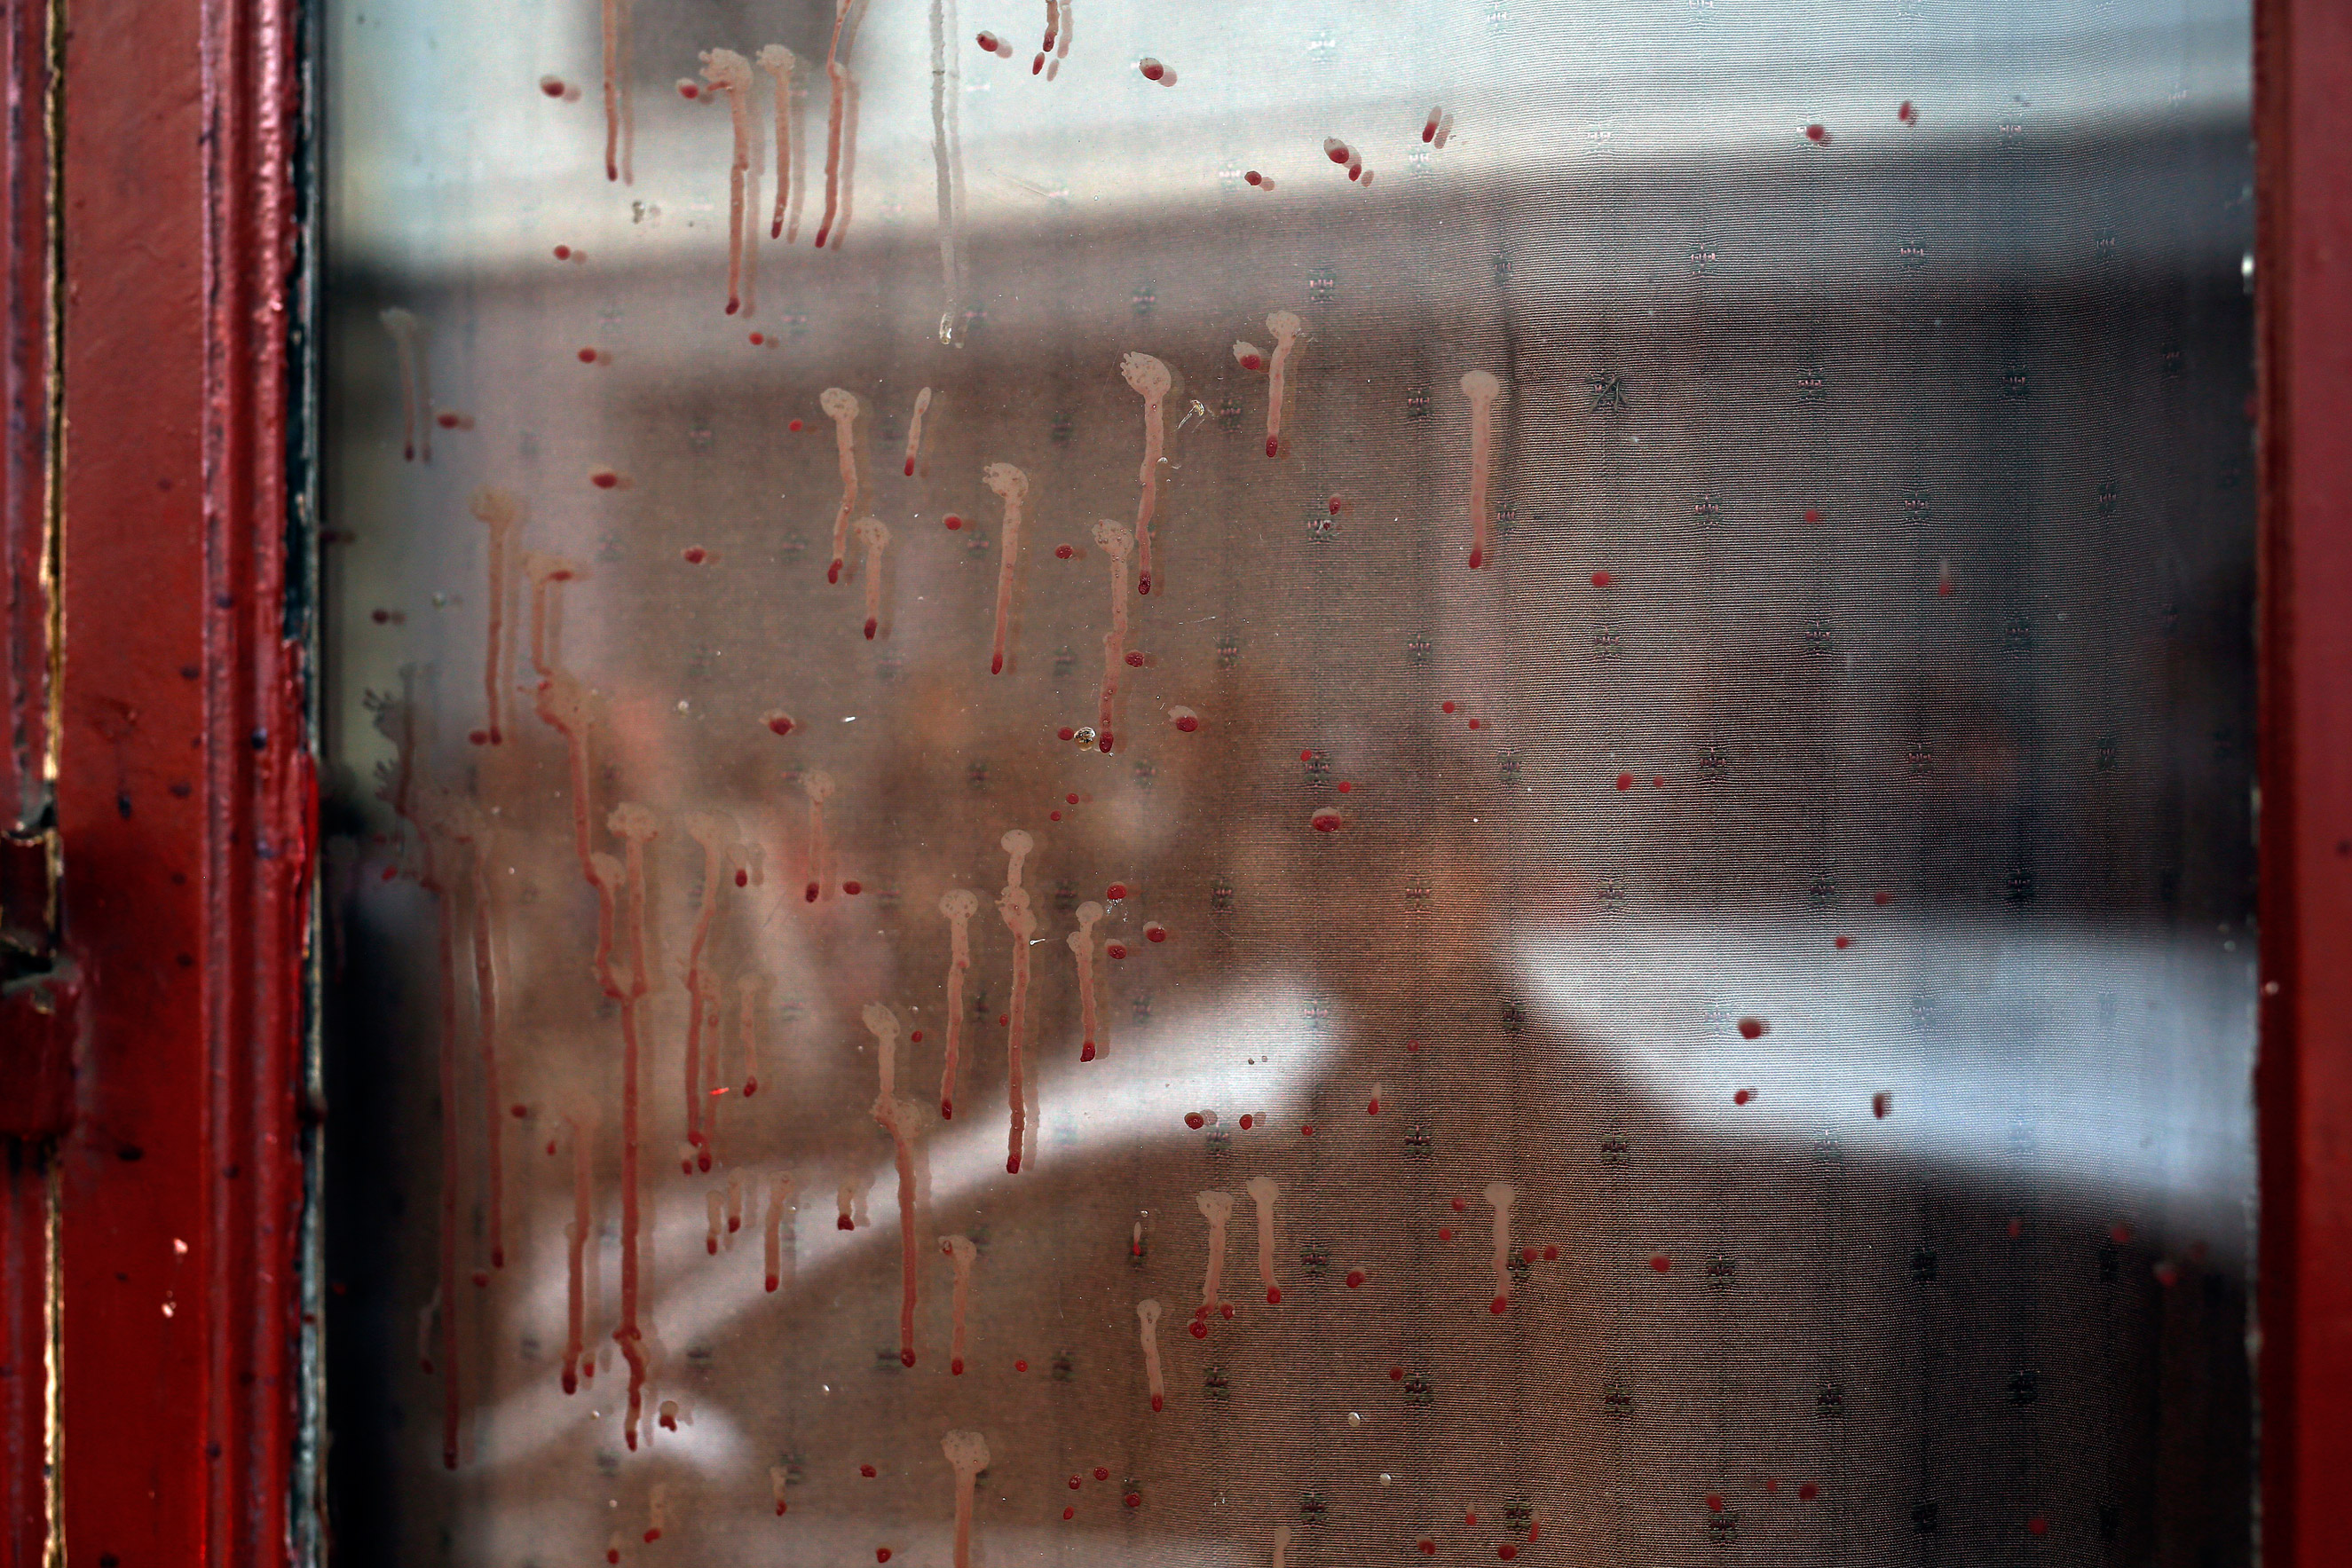 Dried blood on the window of the Carillon cafe in Paris on Nov. 14, 2015.